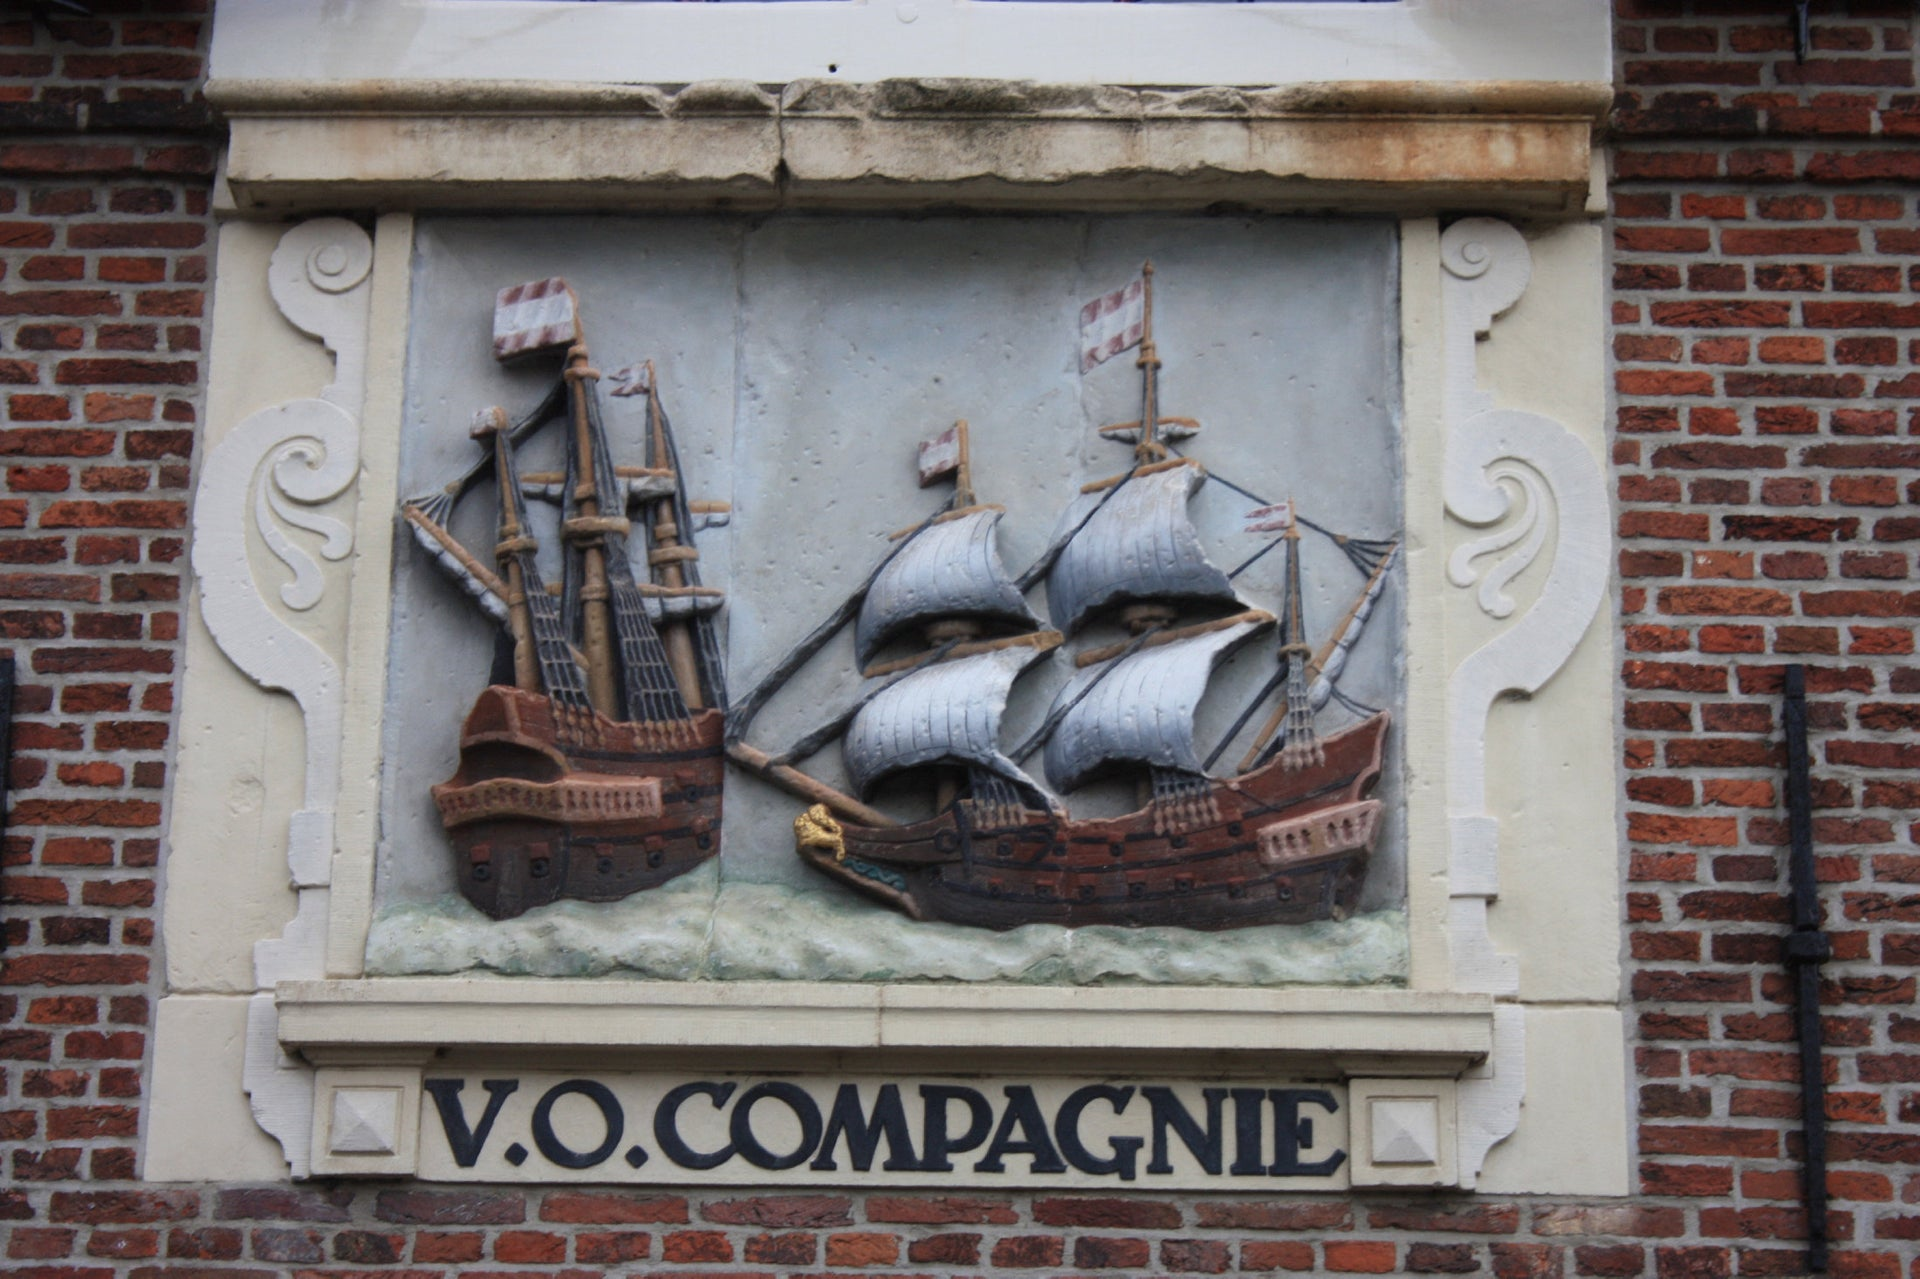 A 17th-century plaque honoring the Dutch East India Company, in the port city of Hoorn, the Netherlands. For a time, it was the world's largest commercial enterprise, but a murderous one.